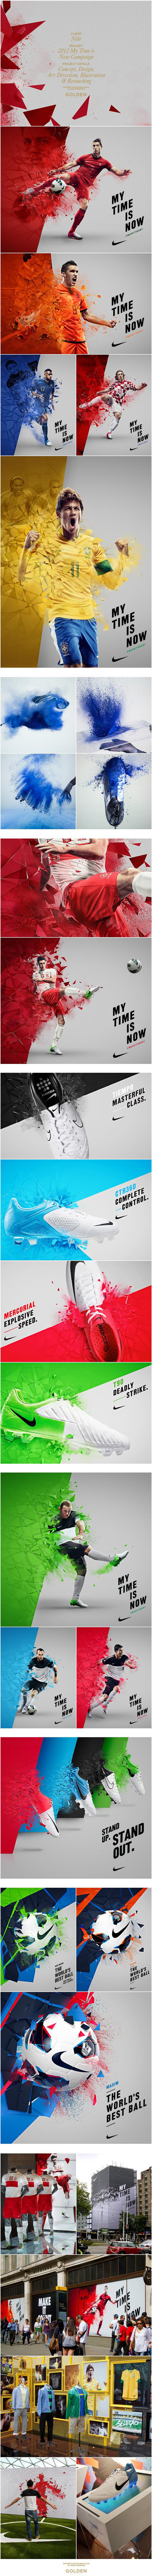 Nike 2012 My Time Is Now Campaign on